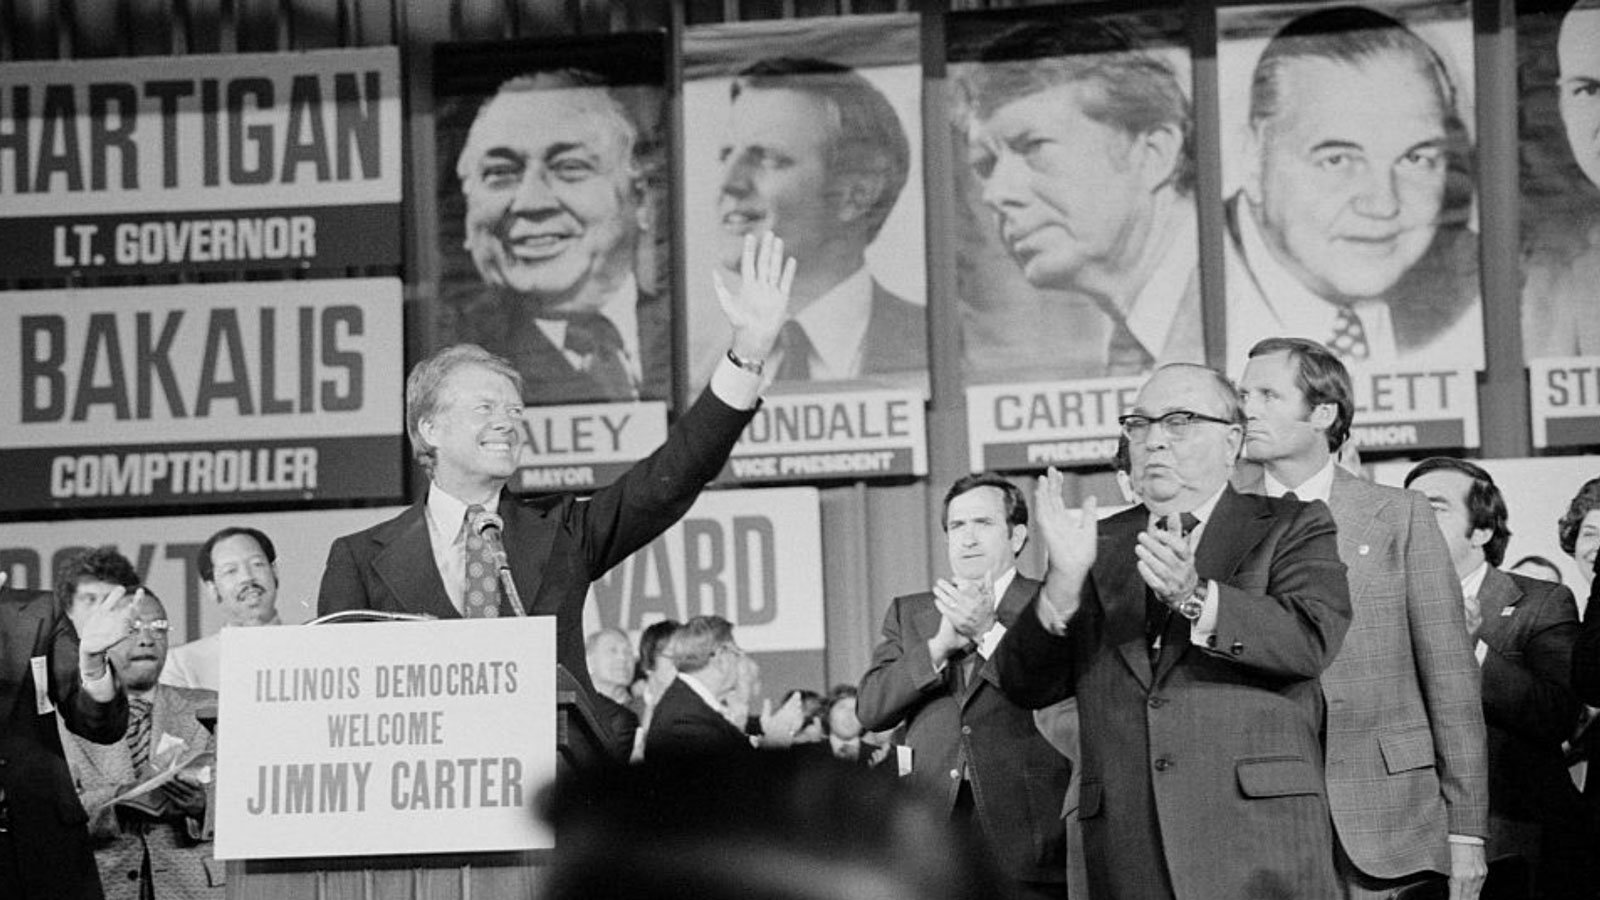 Mayor Richard J. Daley at Illinois State Democratic convention in 1976 with then-candidate Jimmy Carter